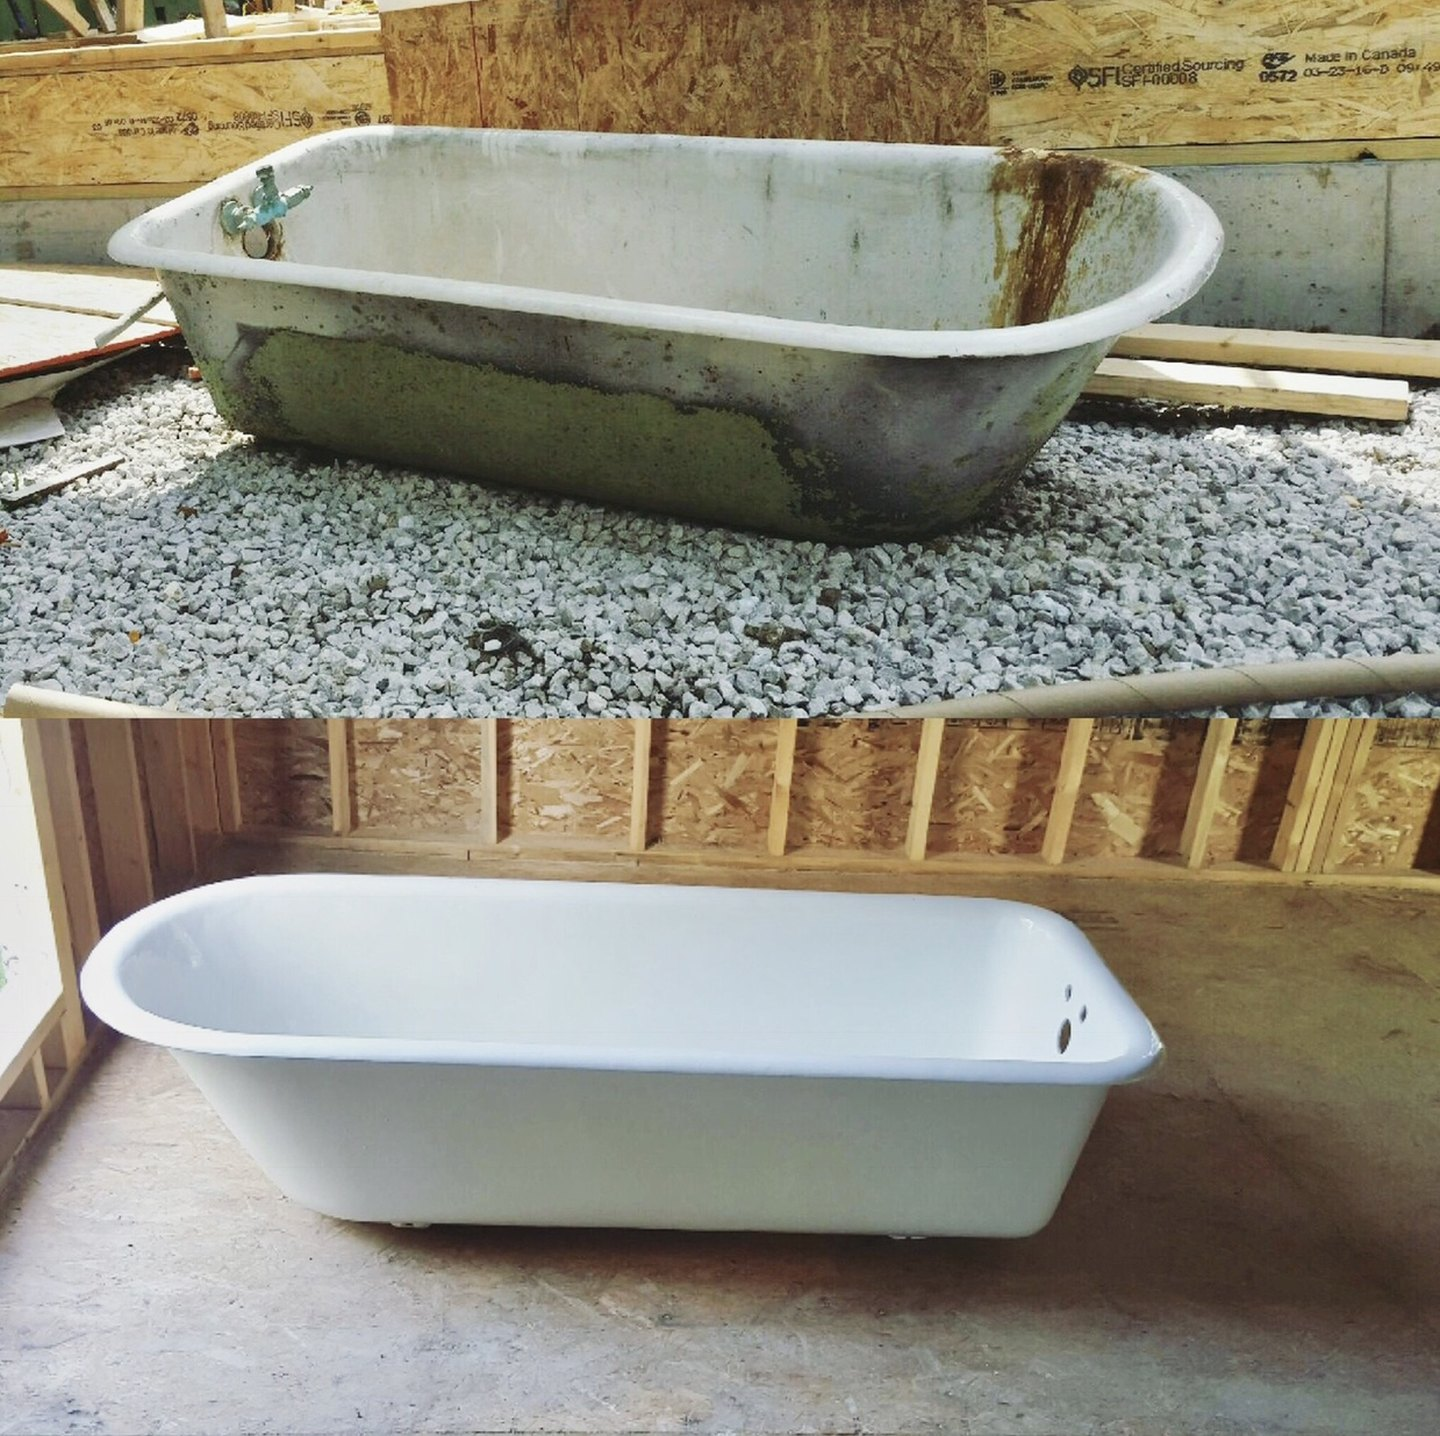 Good Bones: A Historic Claw-foot Tub Is Restored to Its Former Glory ...